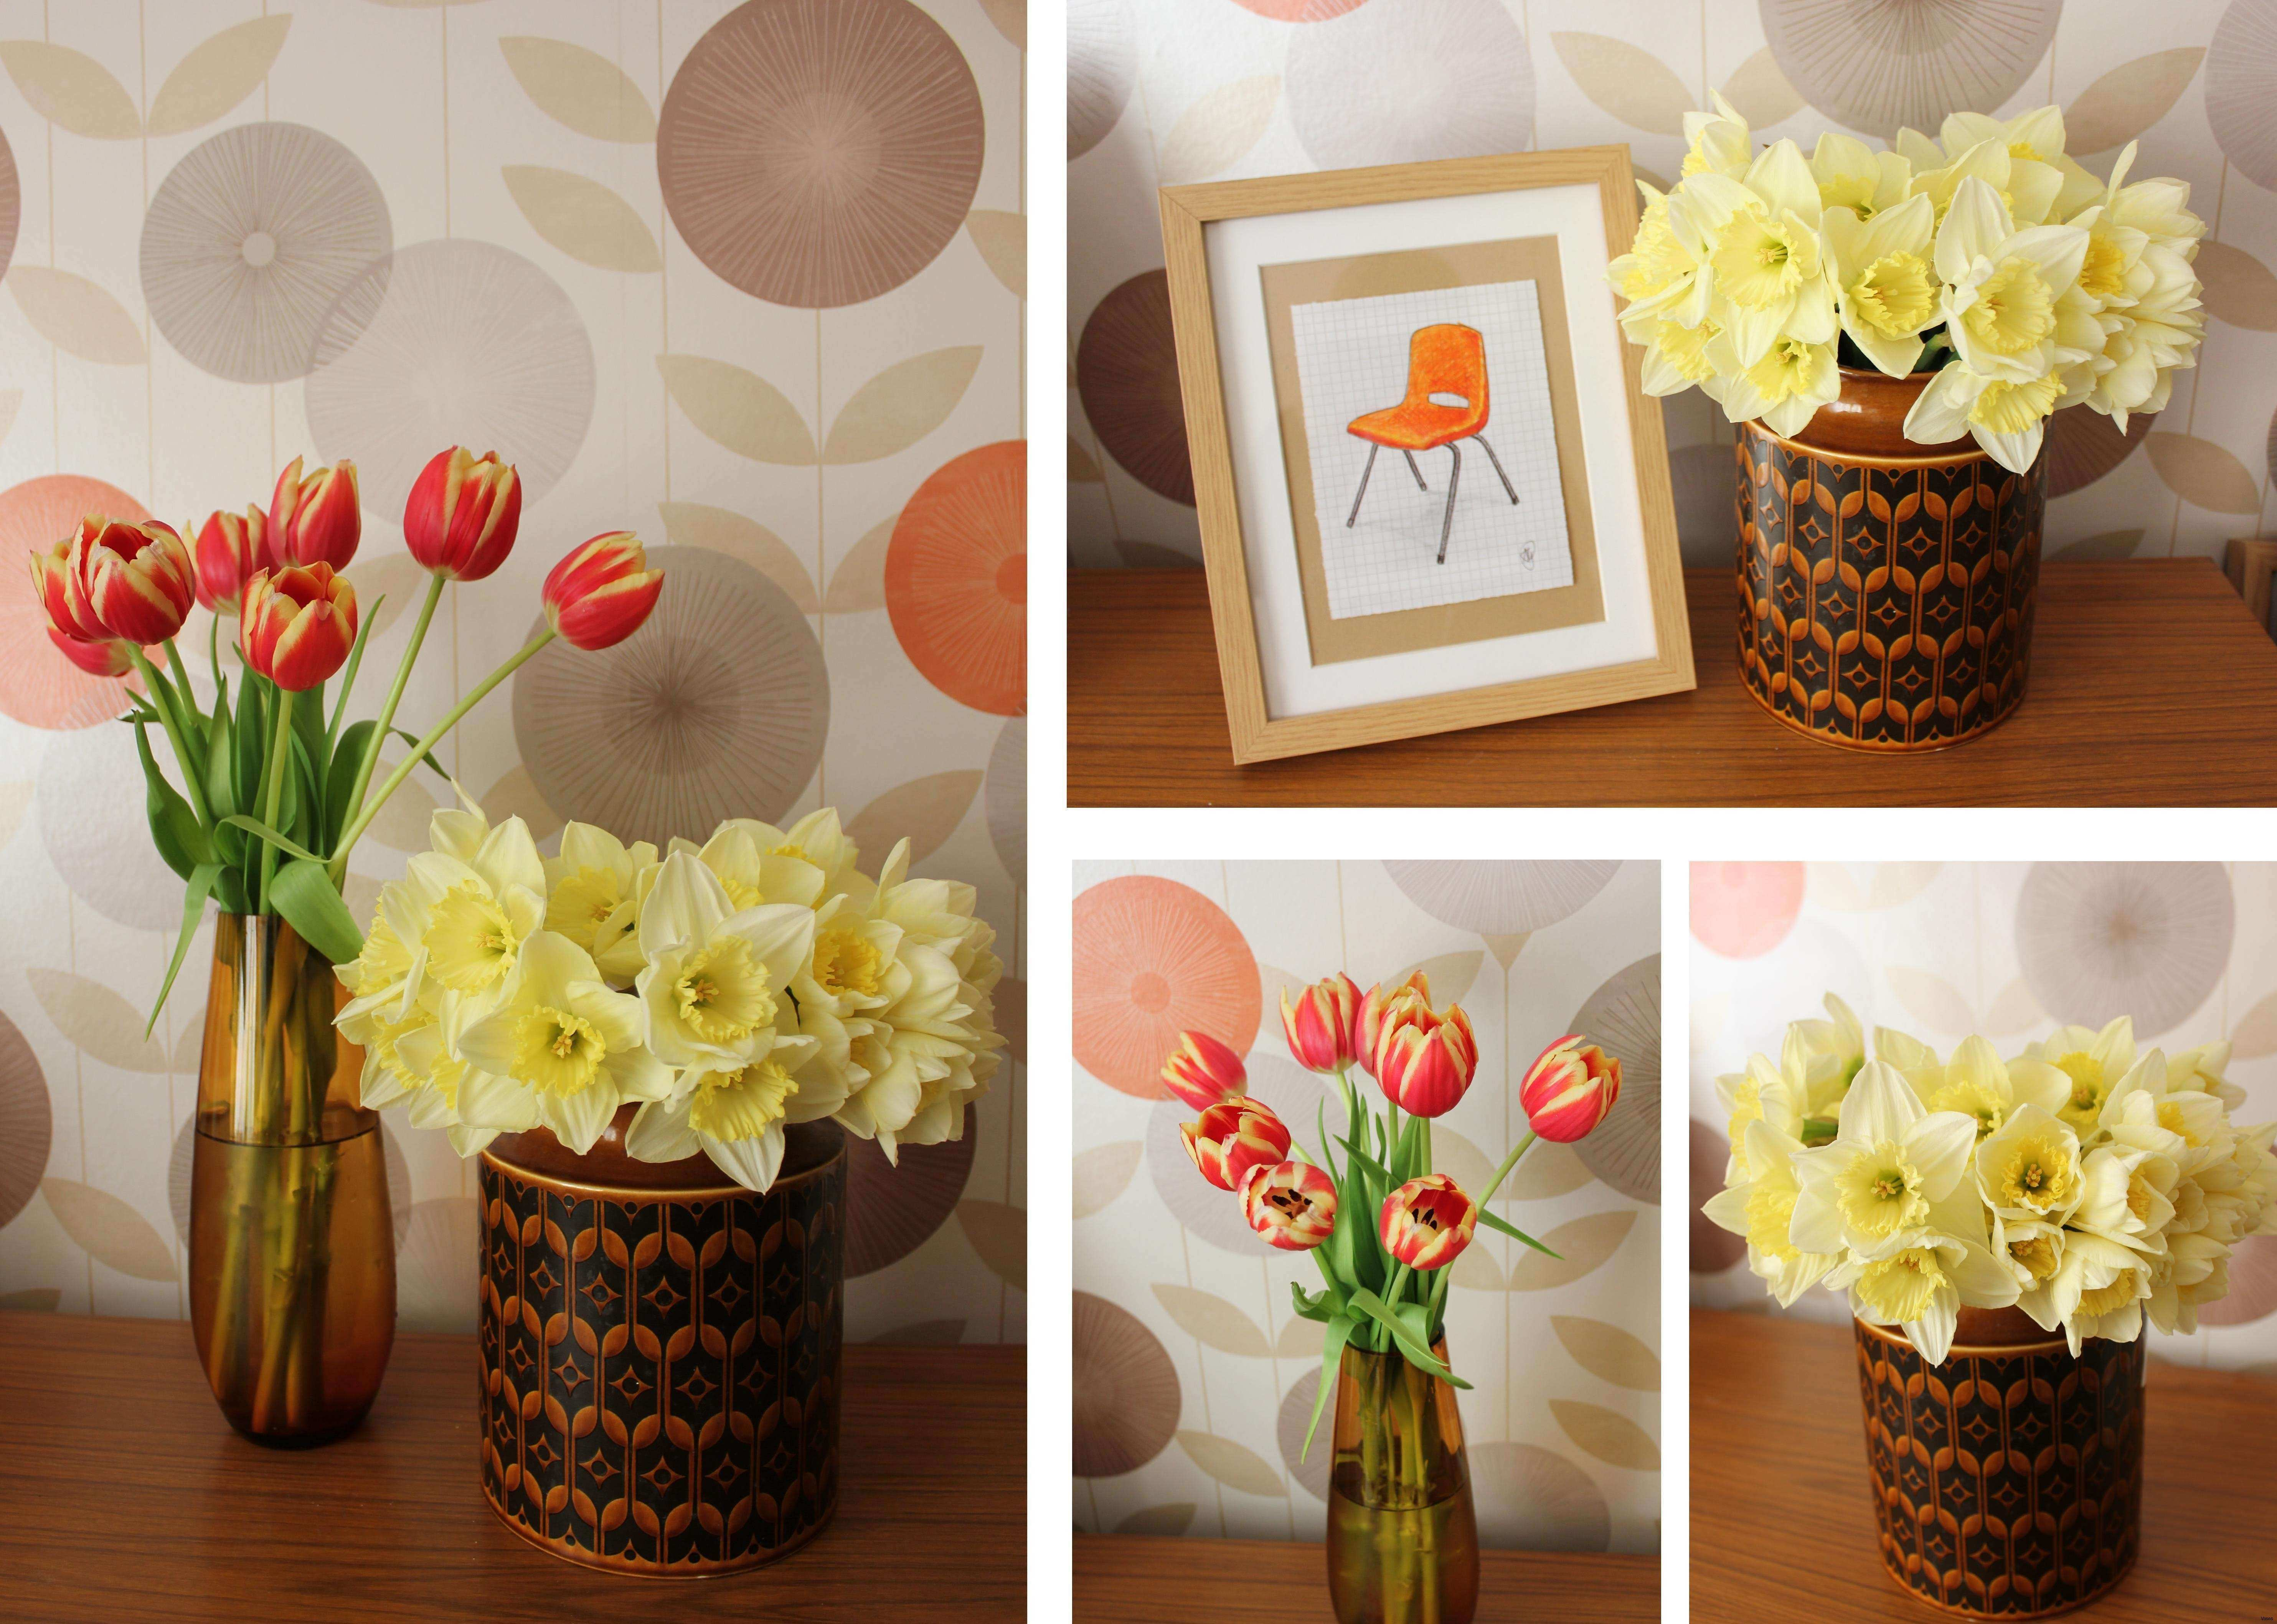 Diy Home Decor Vaseh Vases Decorative Flower Ideas I 0d Design Ideas